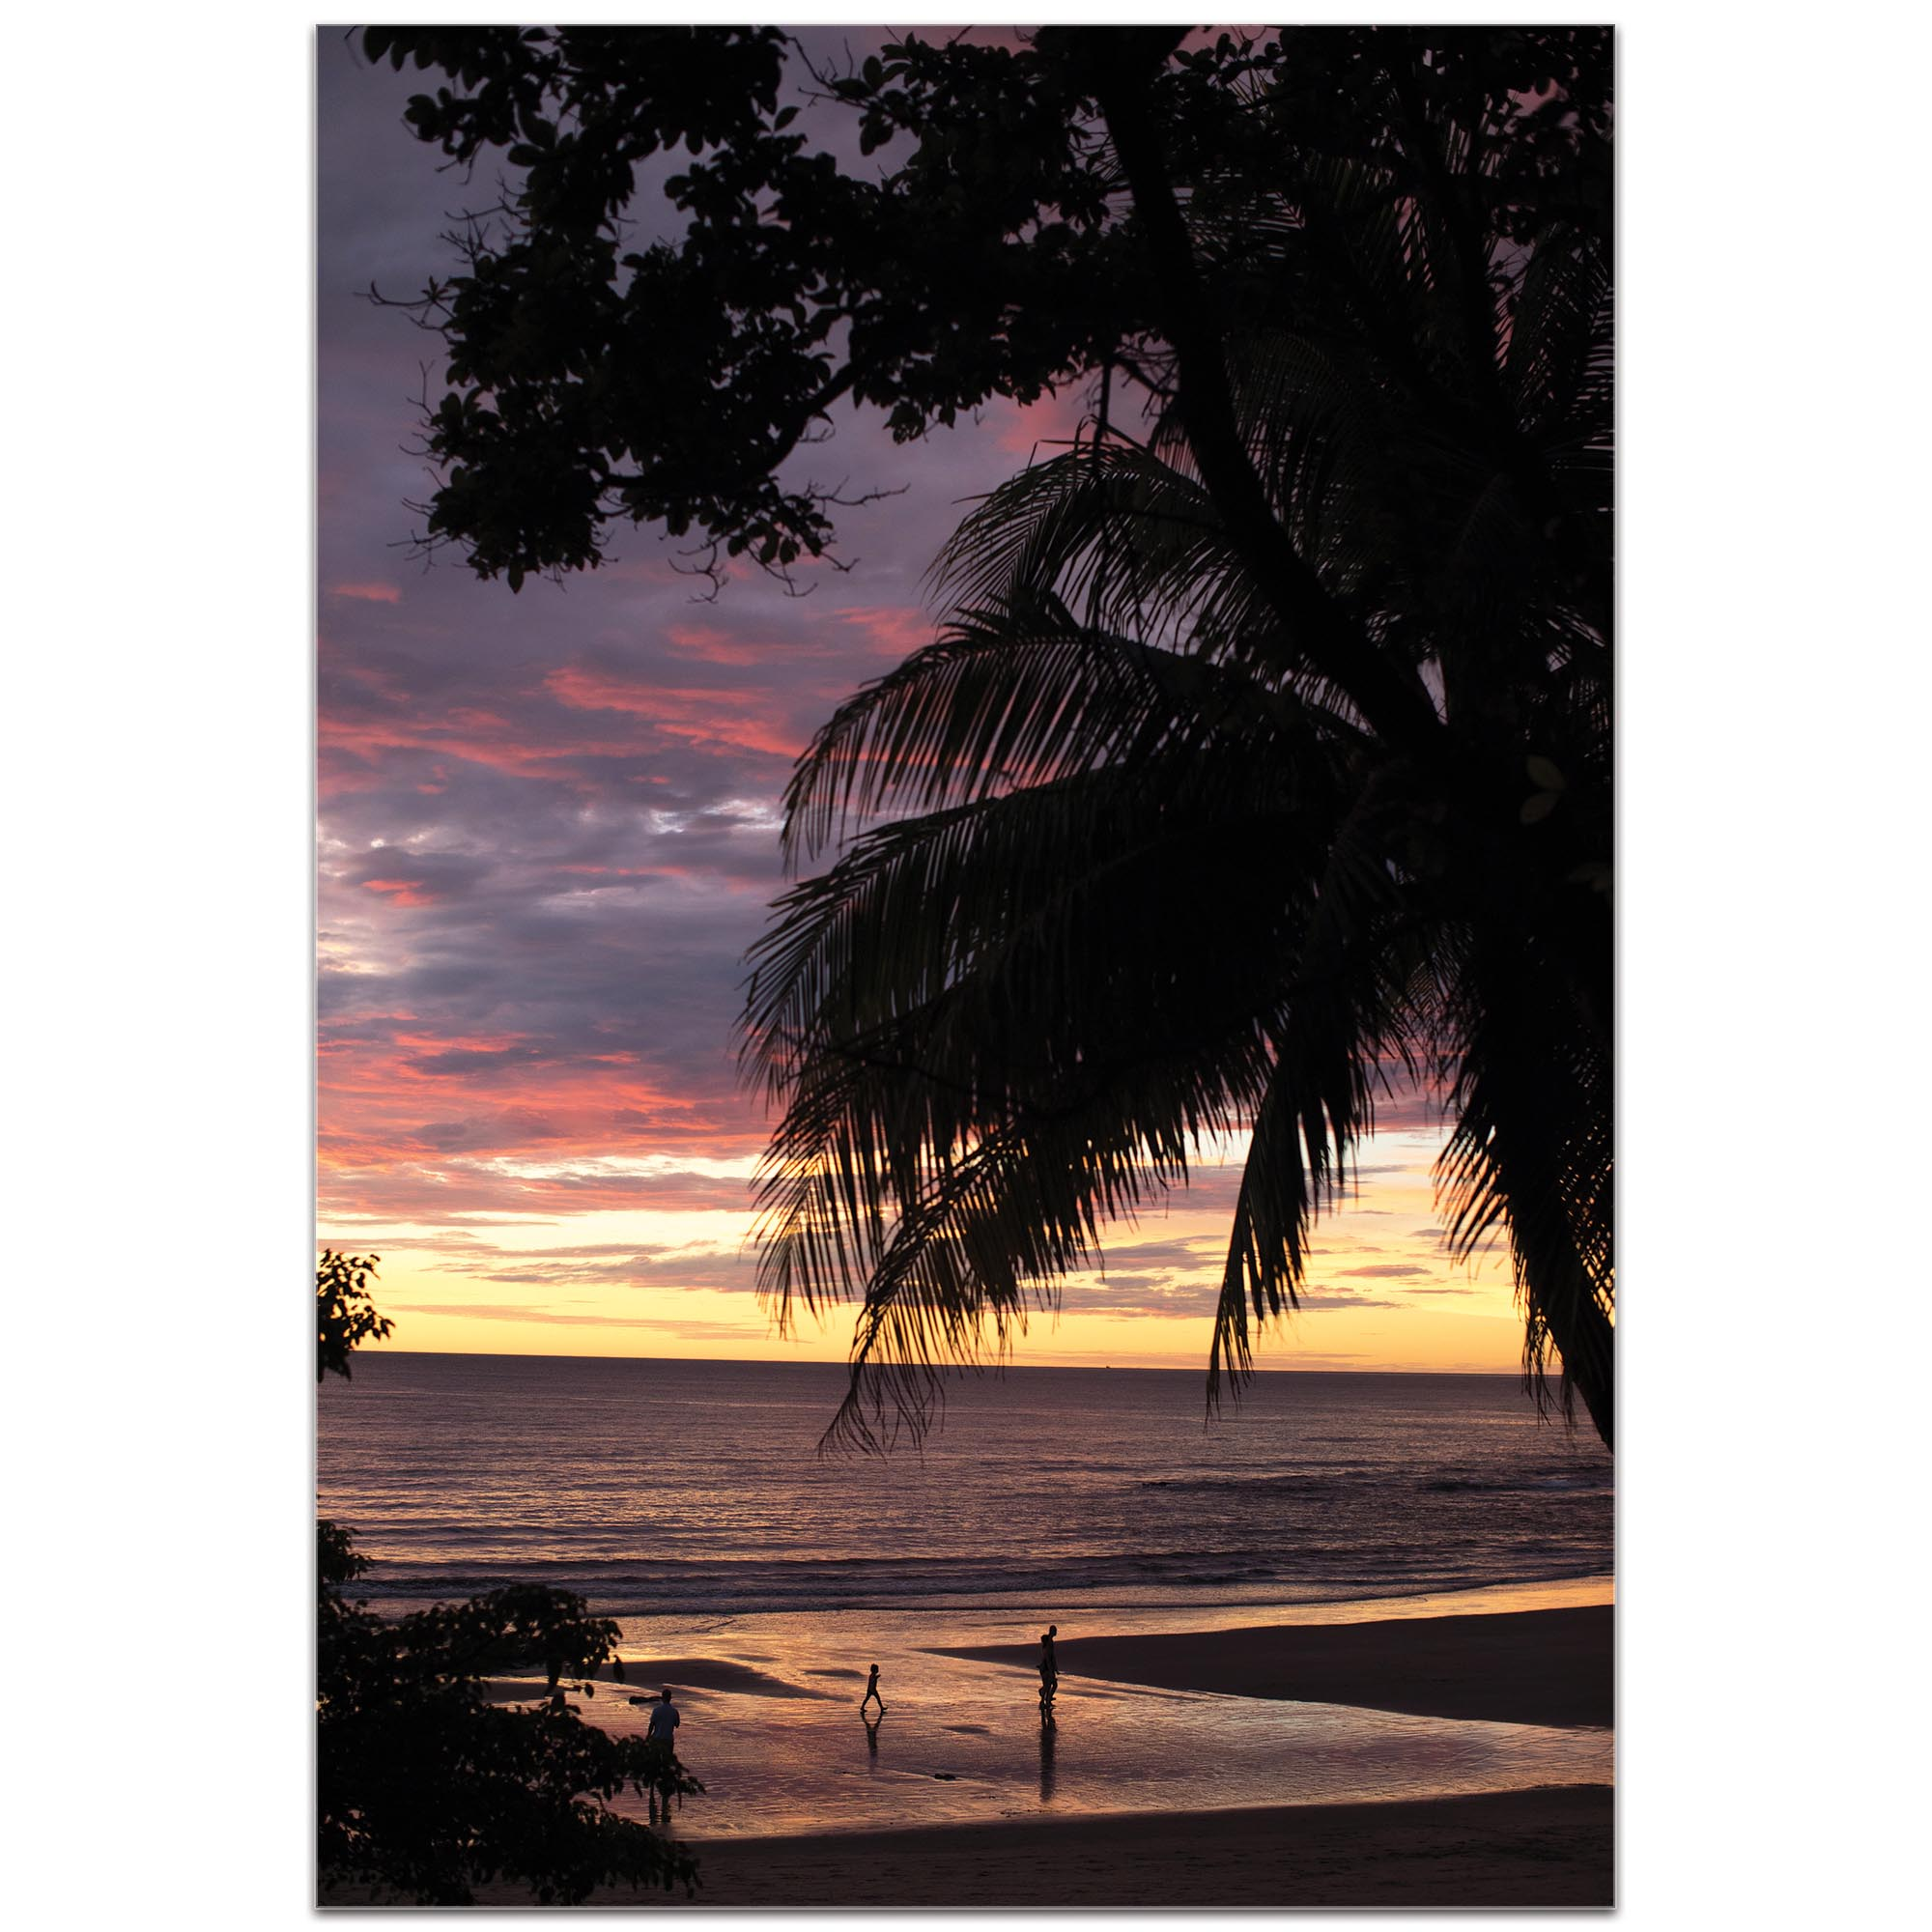 Coastal Wall Art 'Coastal Sunset Skies' - Beach Sunset Decor on Metal or Plexiglass - Image 2